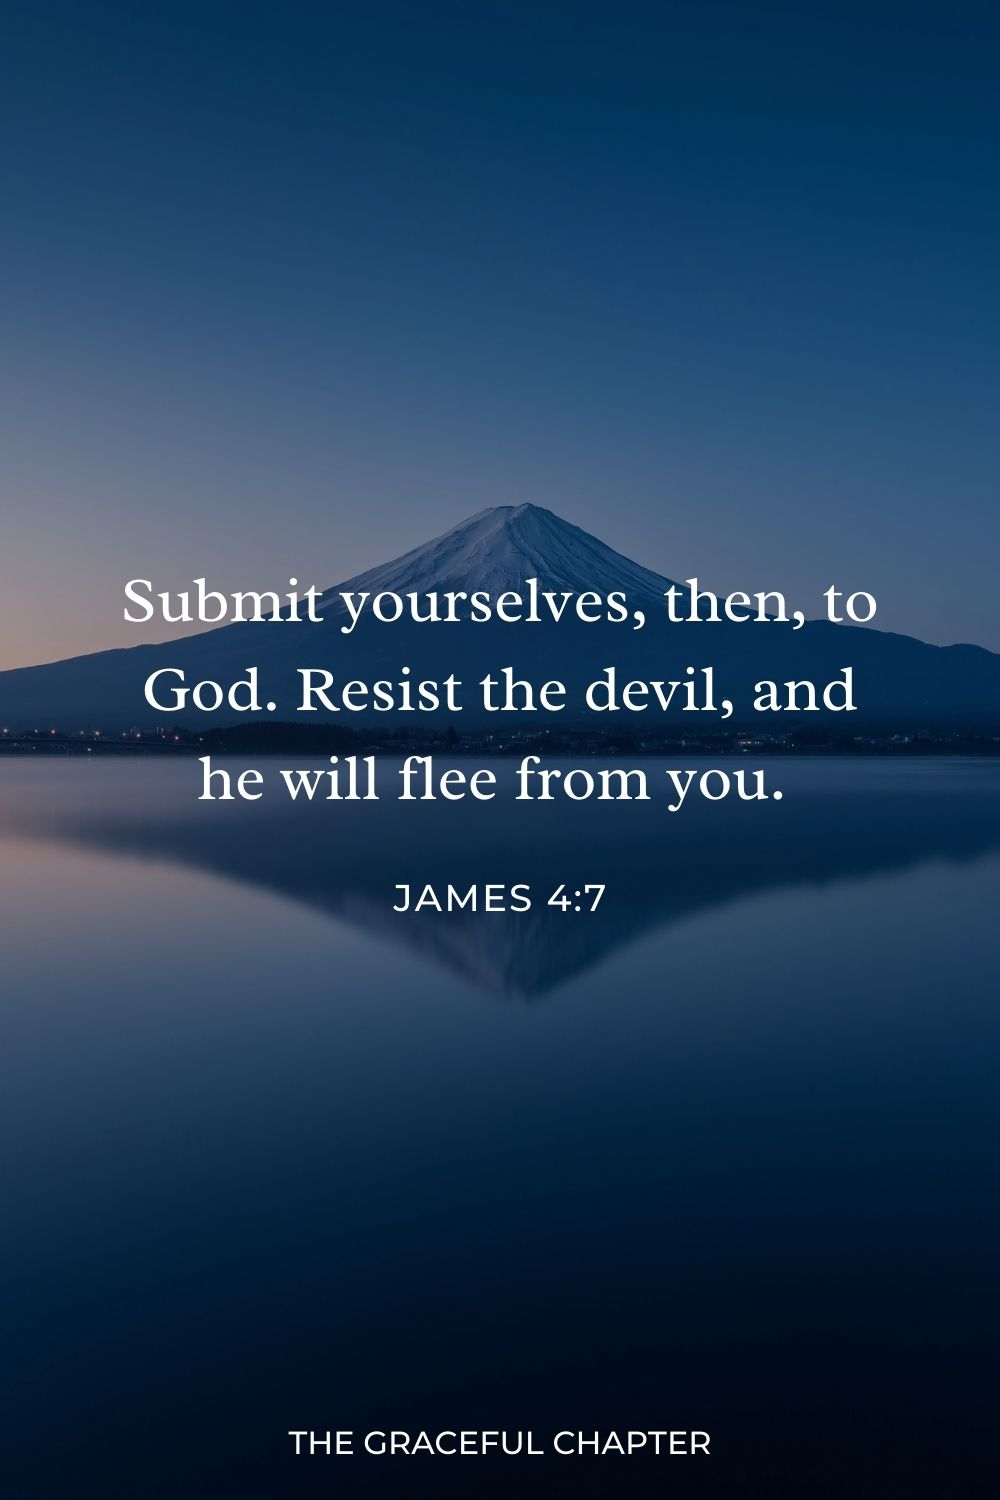 Submit yourselves, then, to God. Resist the devil, and he will flee from you. James 4:7